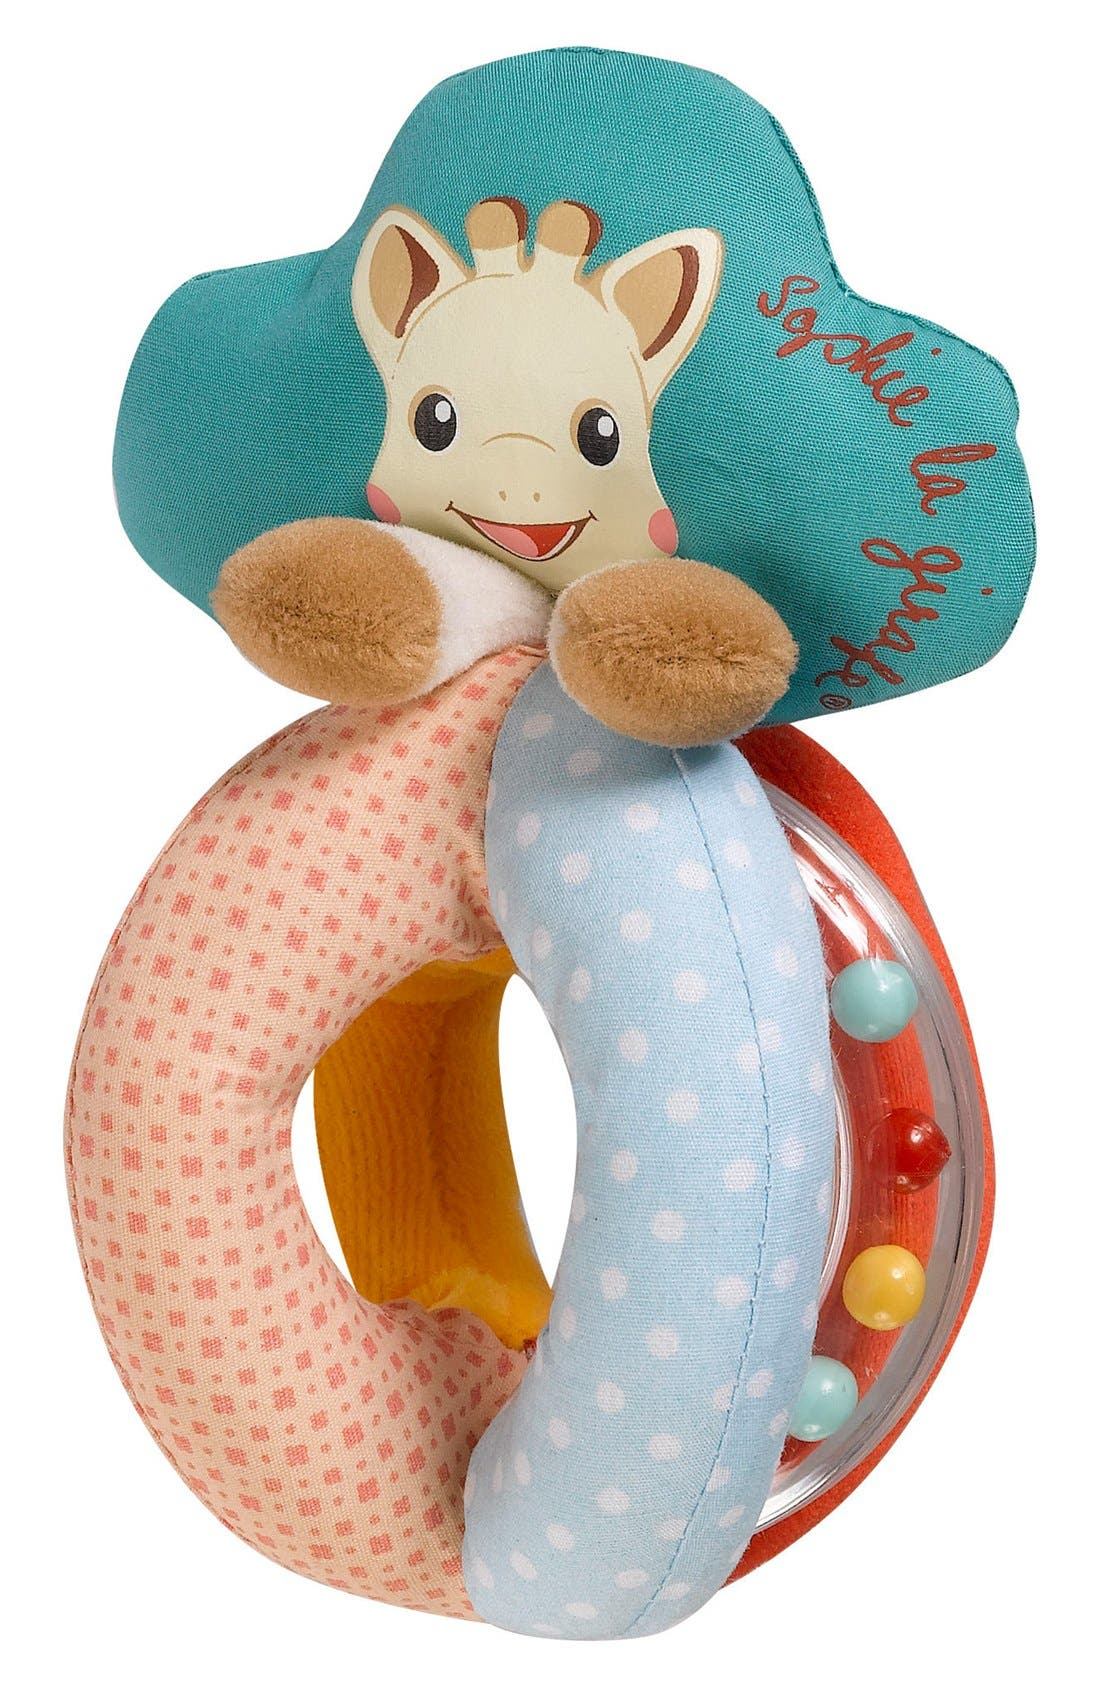 'Sophiesticated' Rattle & Teething Toy,                             Alternate thumbnail 2, color,                             Cream